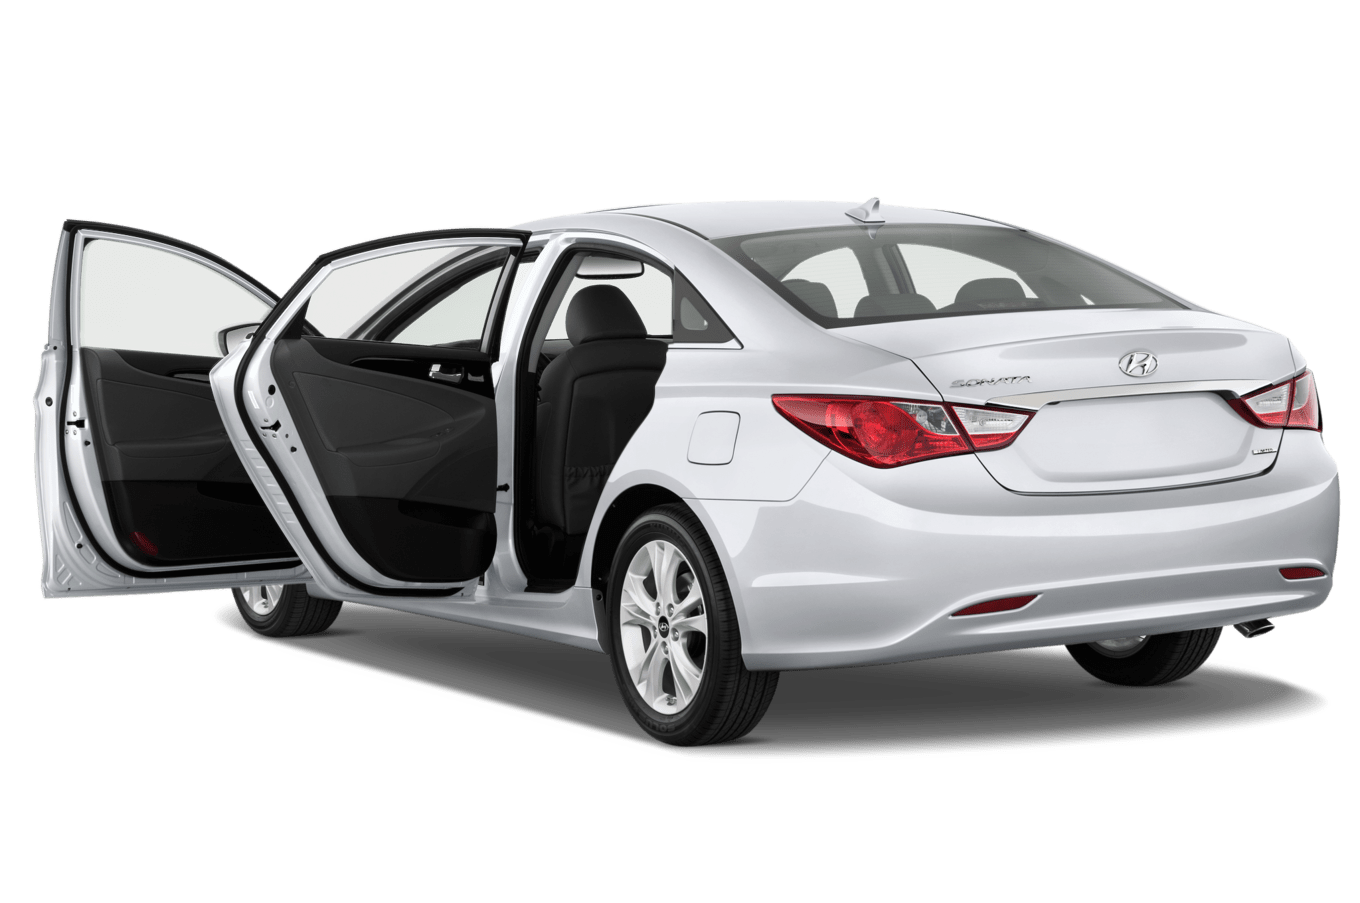 Hyundai Sonata 33 2008 Auto Images And Specification 38 Kohler 2015 Wiring Diagram 2014 Reviews Rating Motor Trend